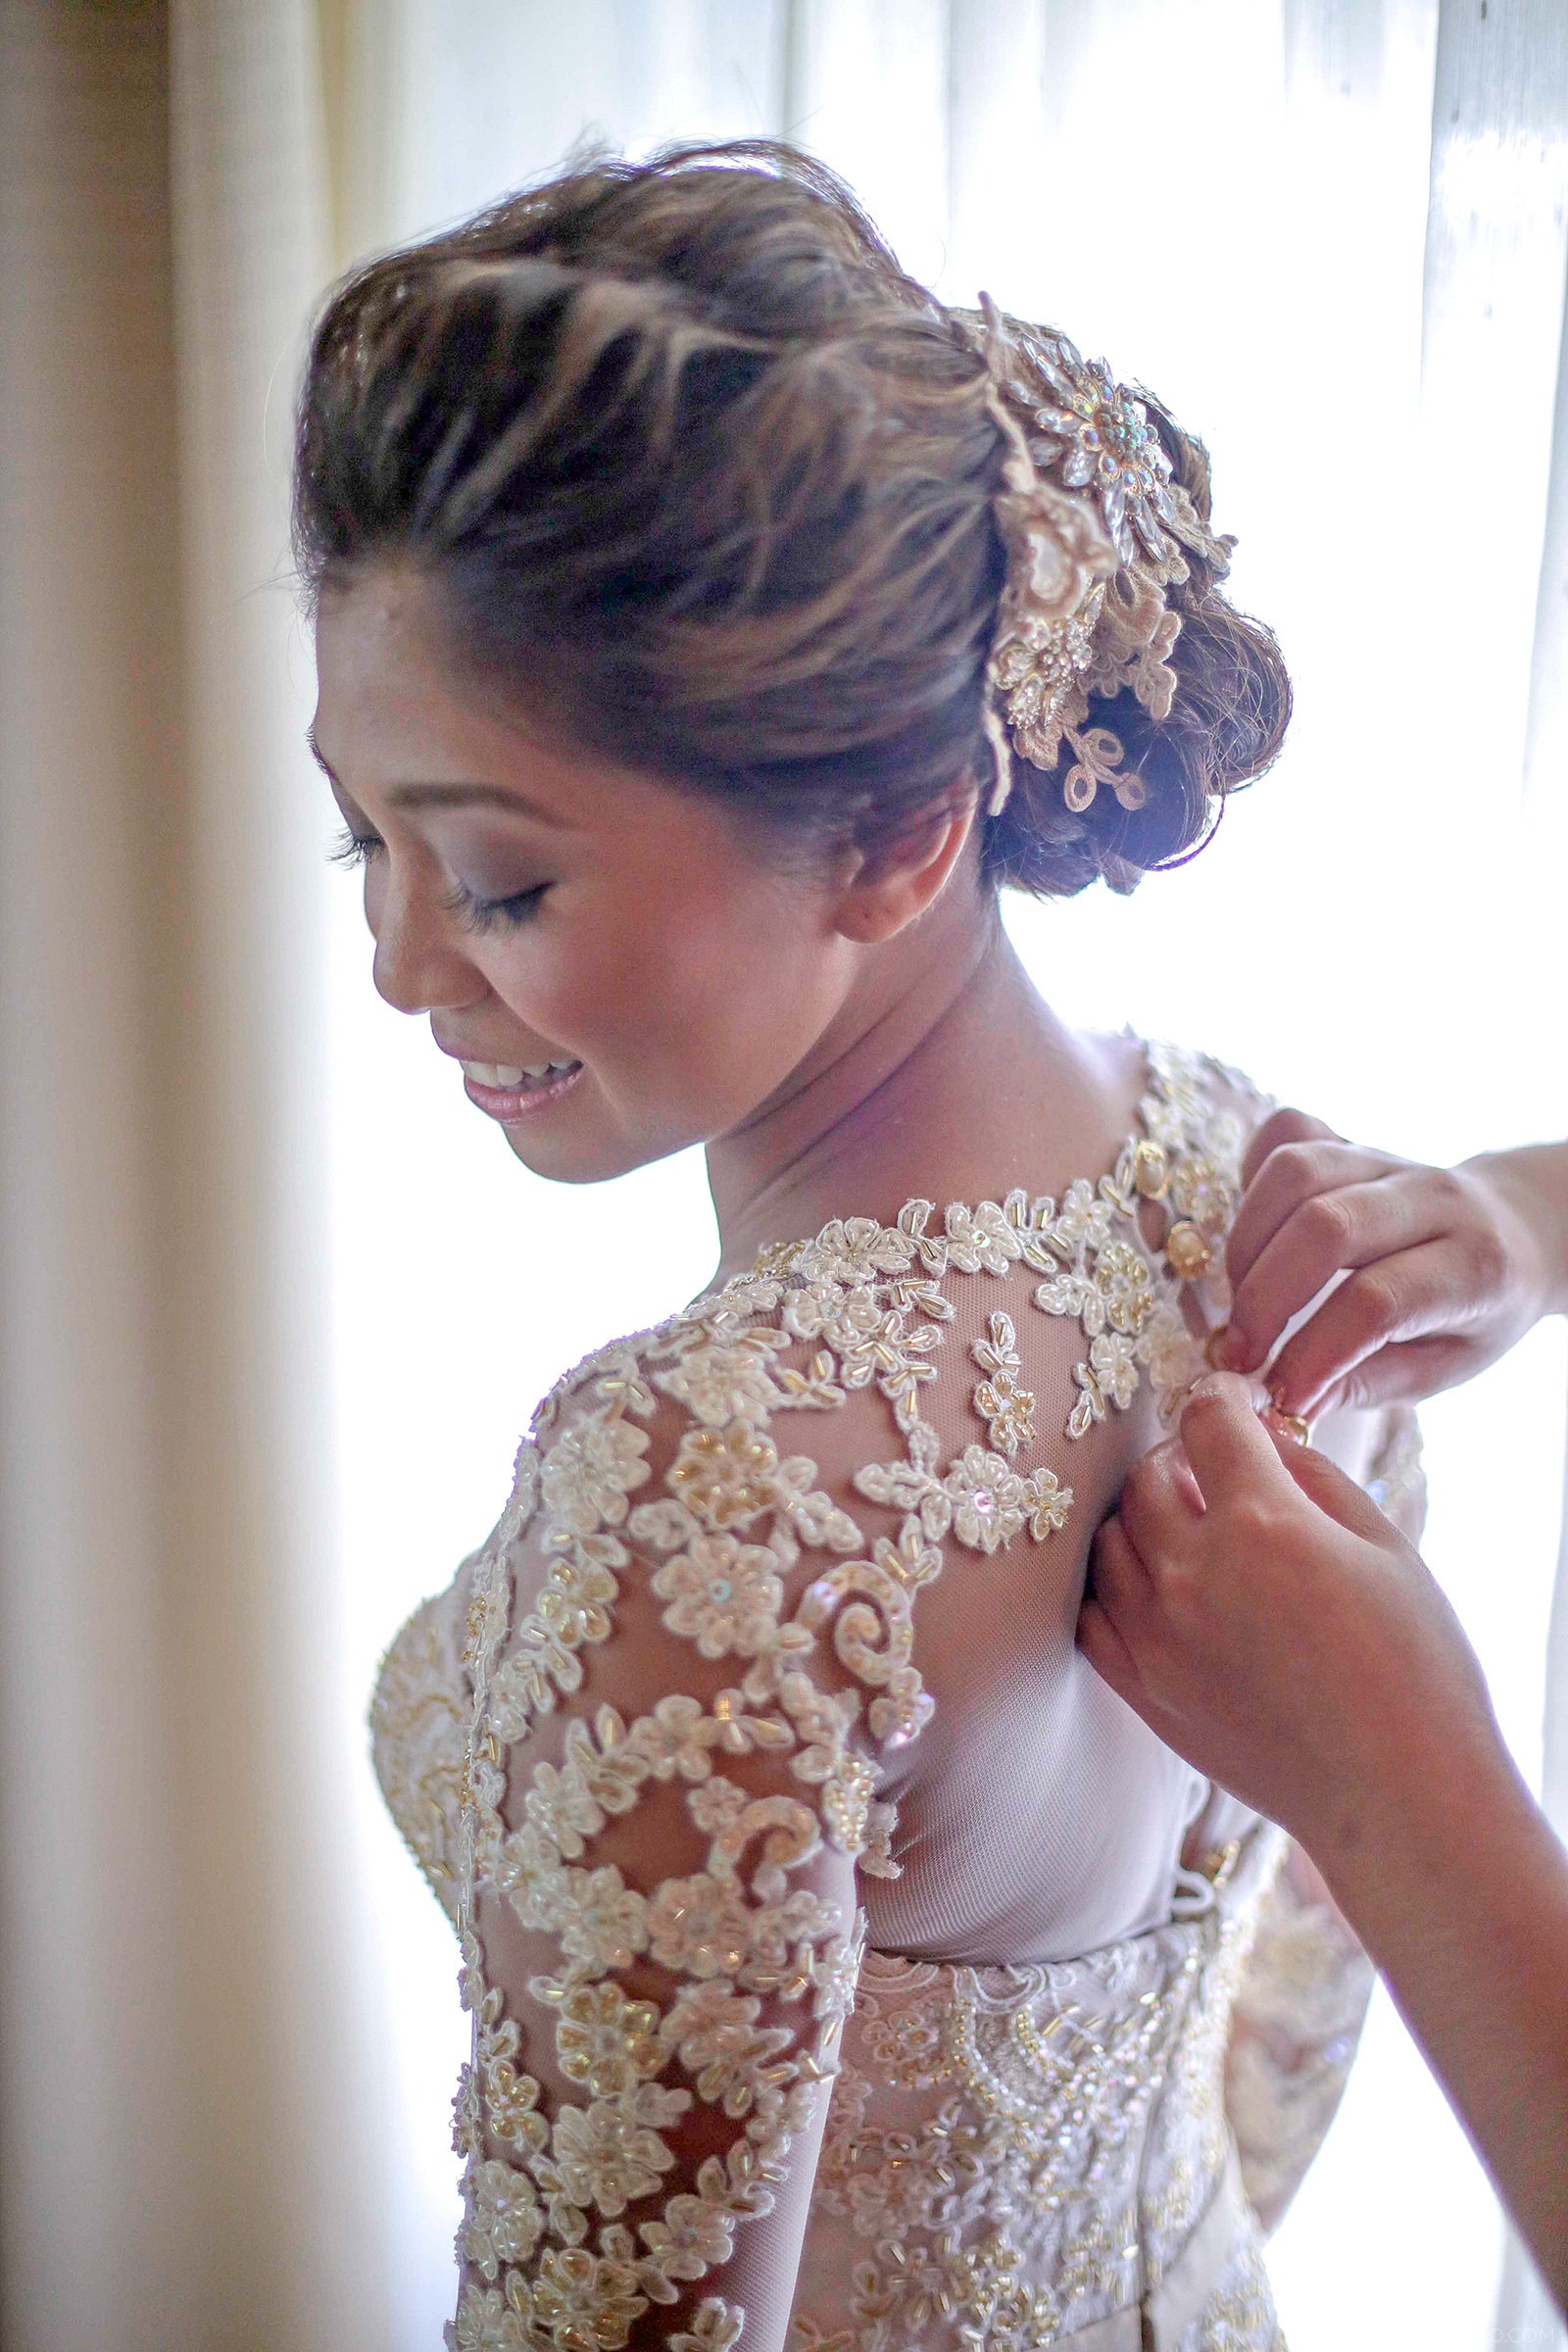 Lace Bridal Gown And Entourage By Camille Co | Camille Tries to Blog